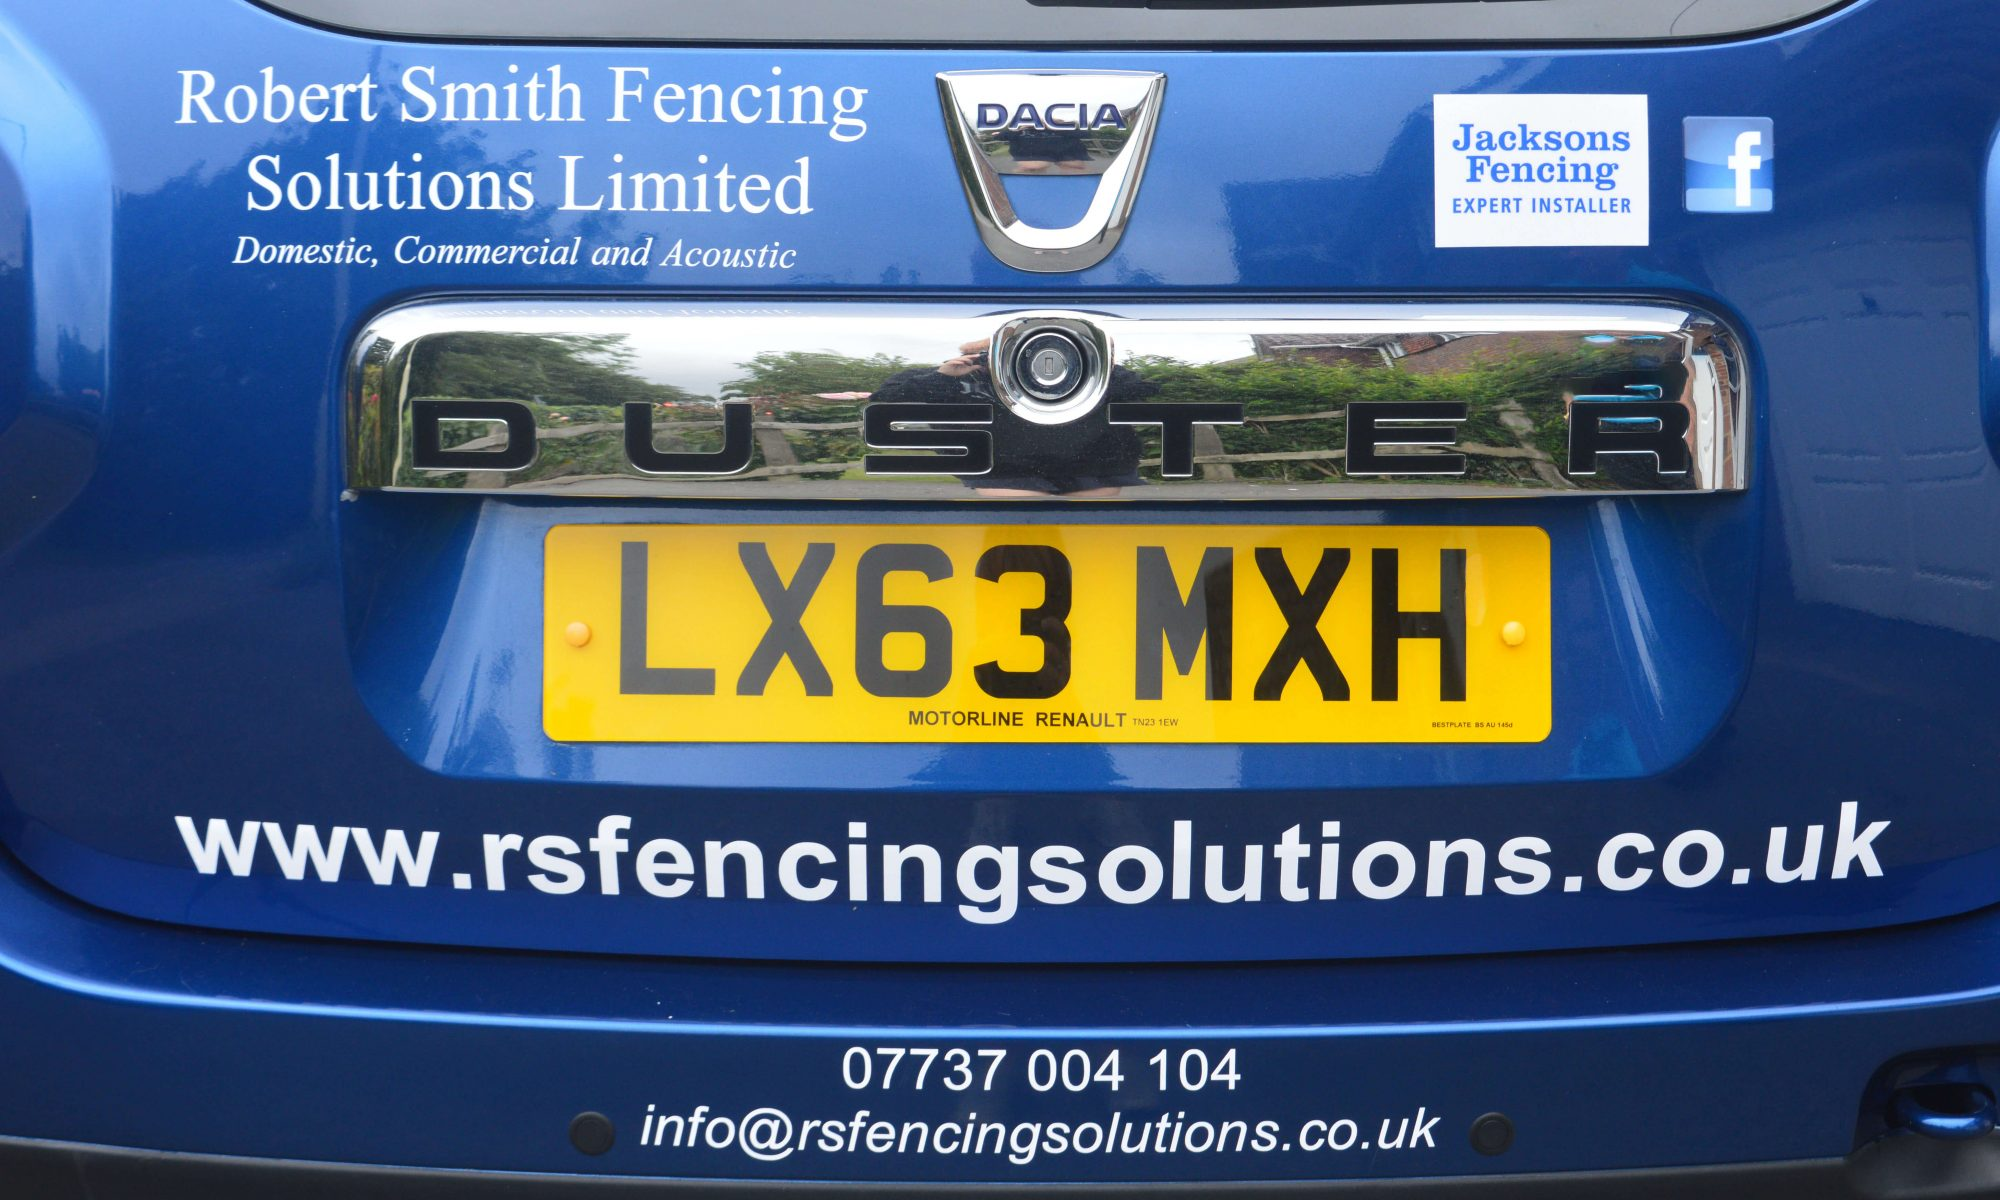 the rs fencing solutions car robert smith fencing solutions ltd